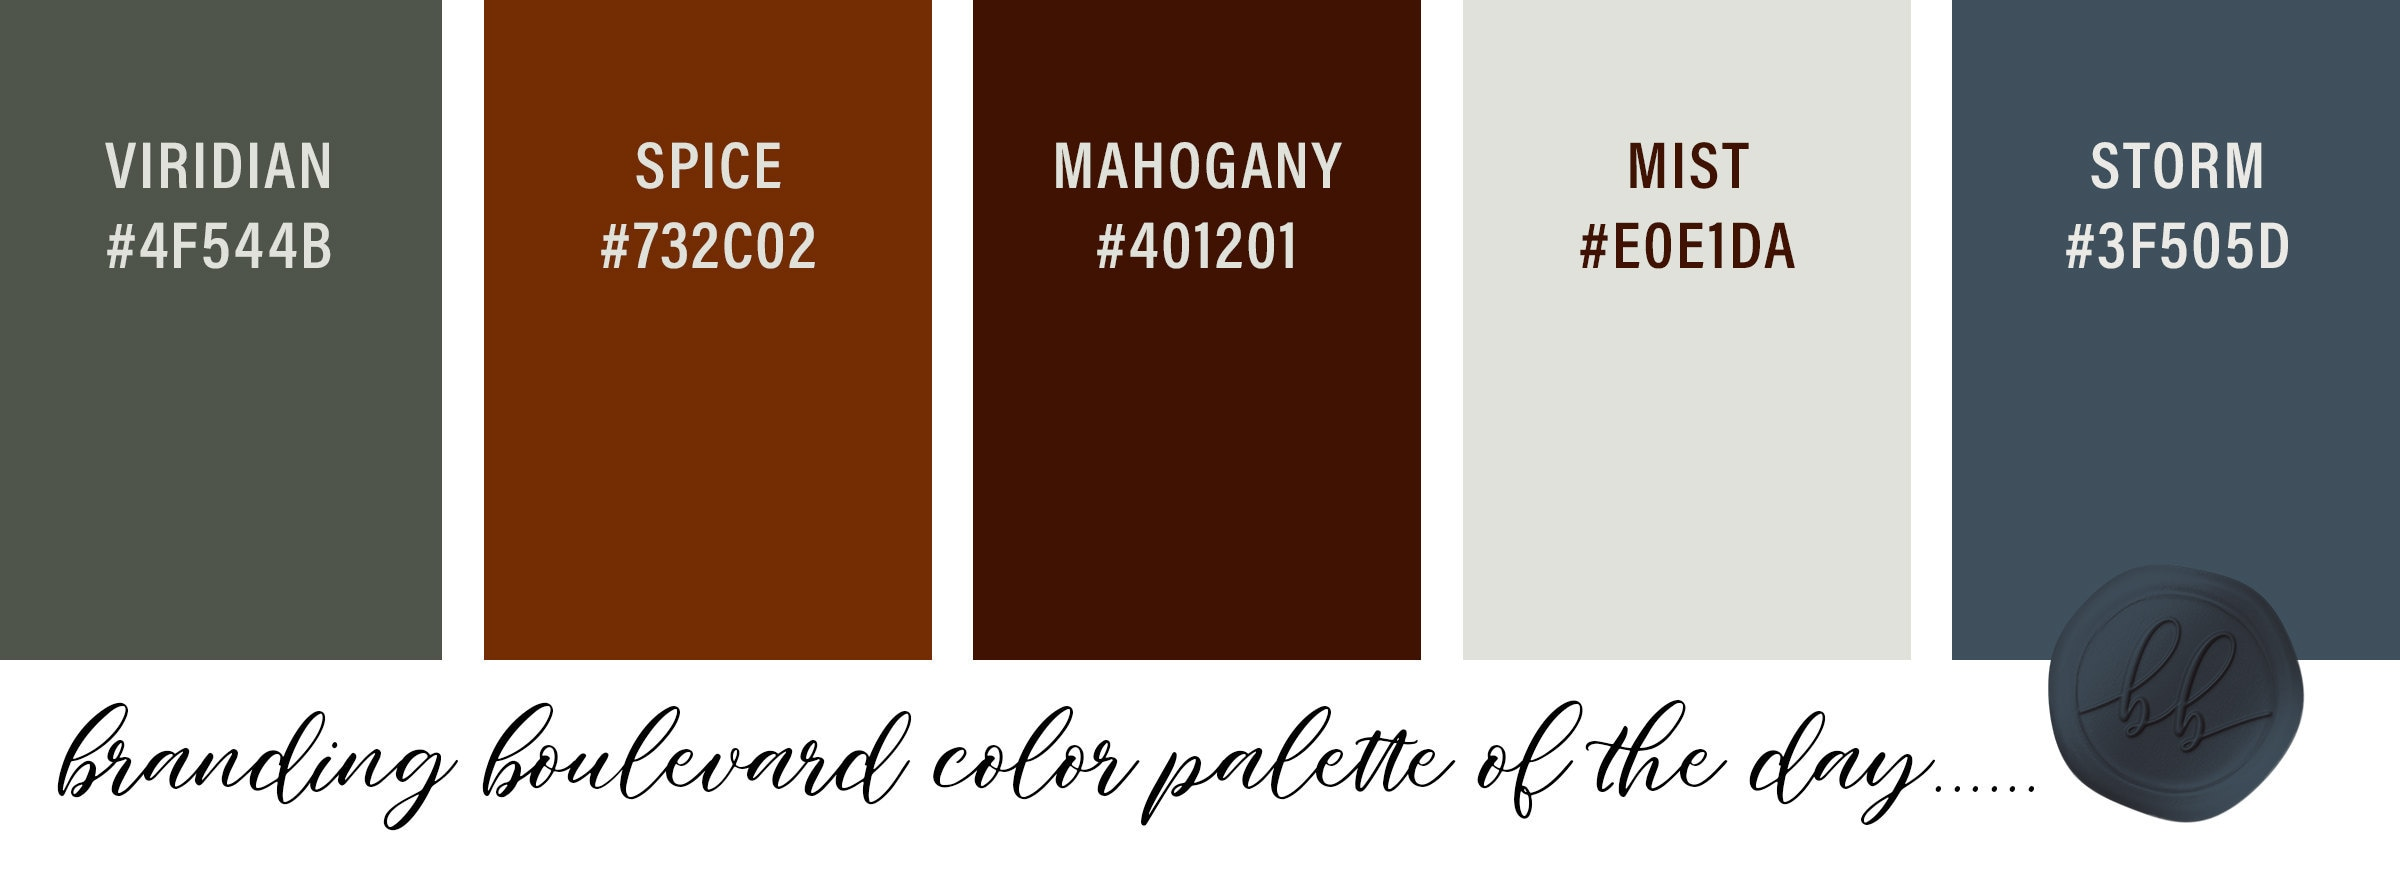 Autumn Spice Color Palette - Green Spice Rust Mahogany Ivory and Bluish Gray